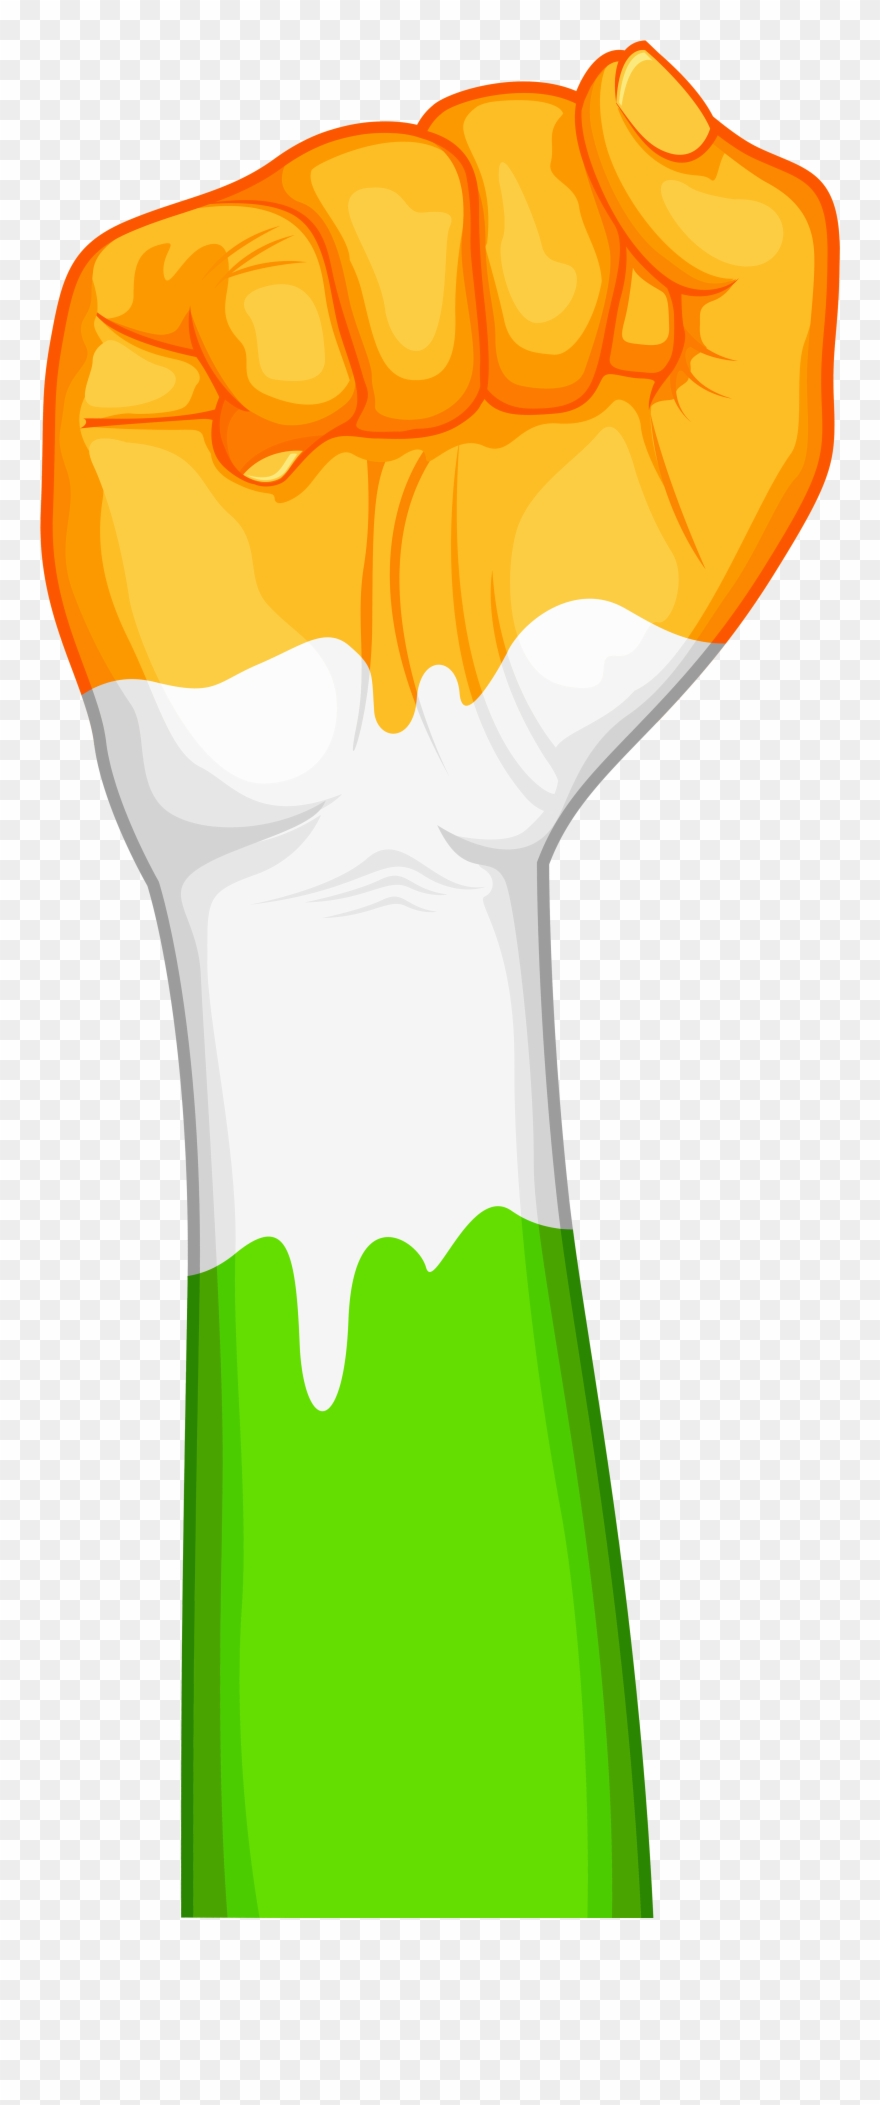 Independence day clipart for picsart picture freeuse stock Indian Independence Day Clipart - Png Download (#780651 ... picture freeuse stock